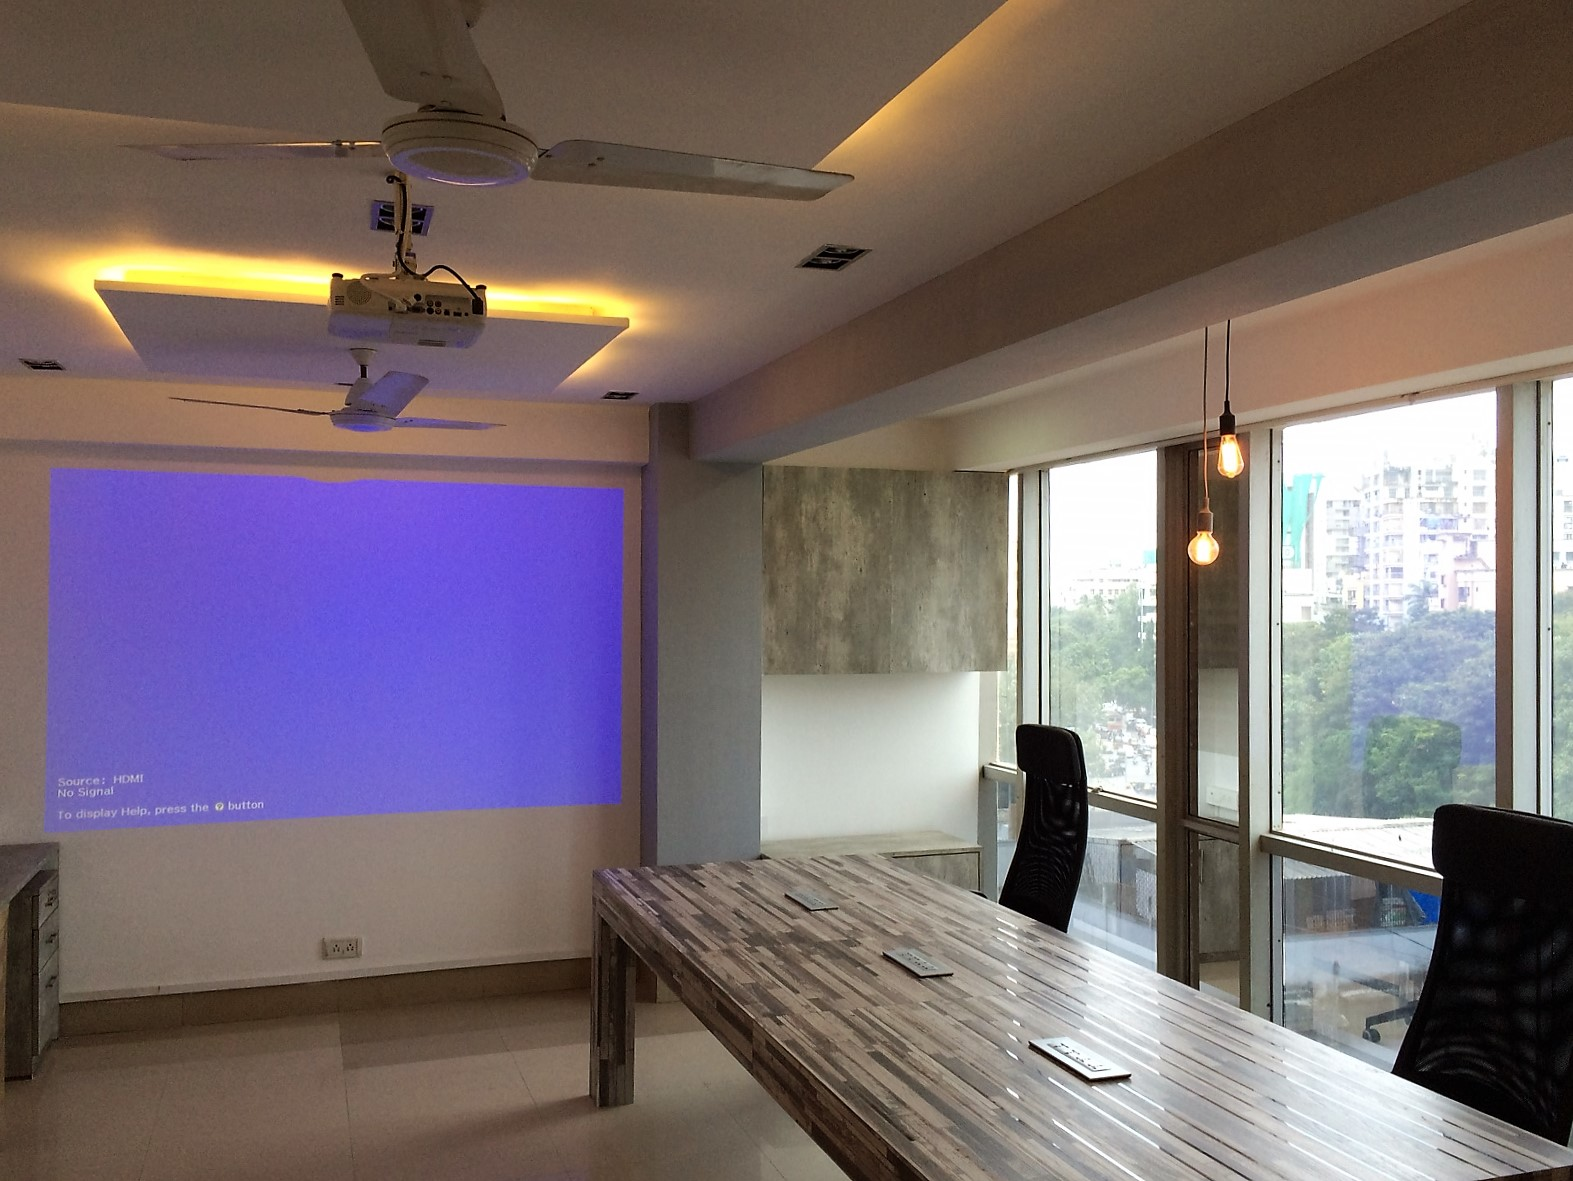 603 The Co-Working Space India Kowrk coworking space Mumbai